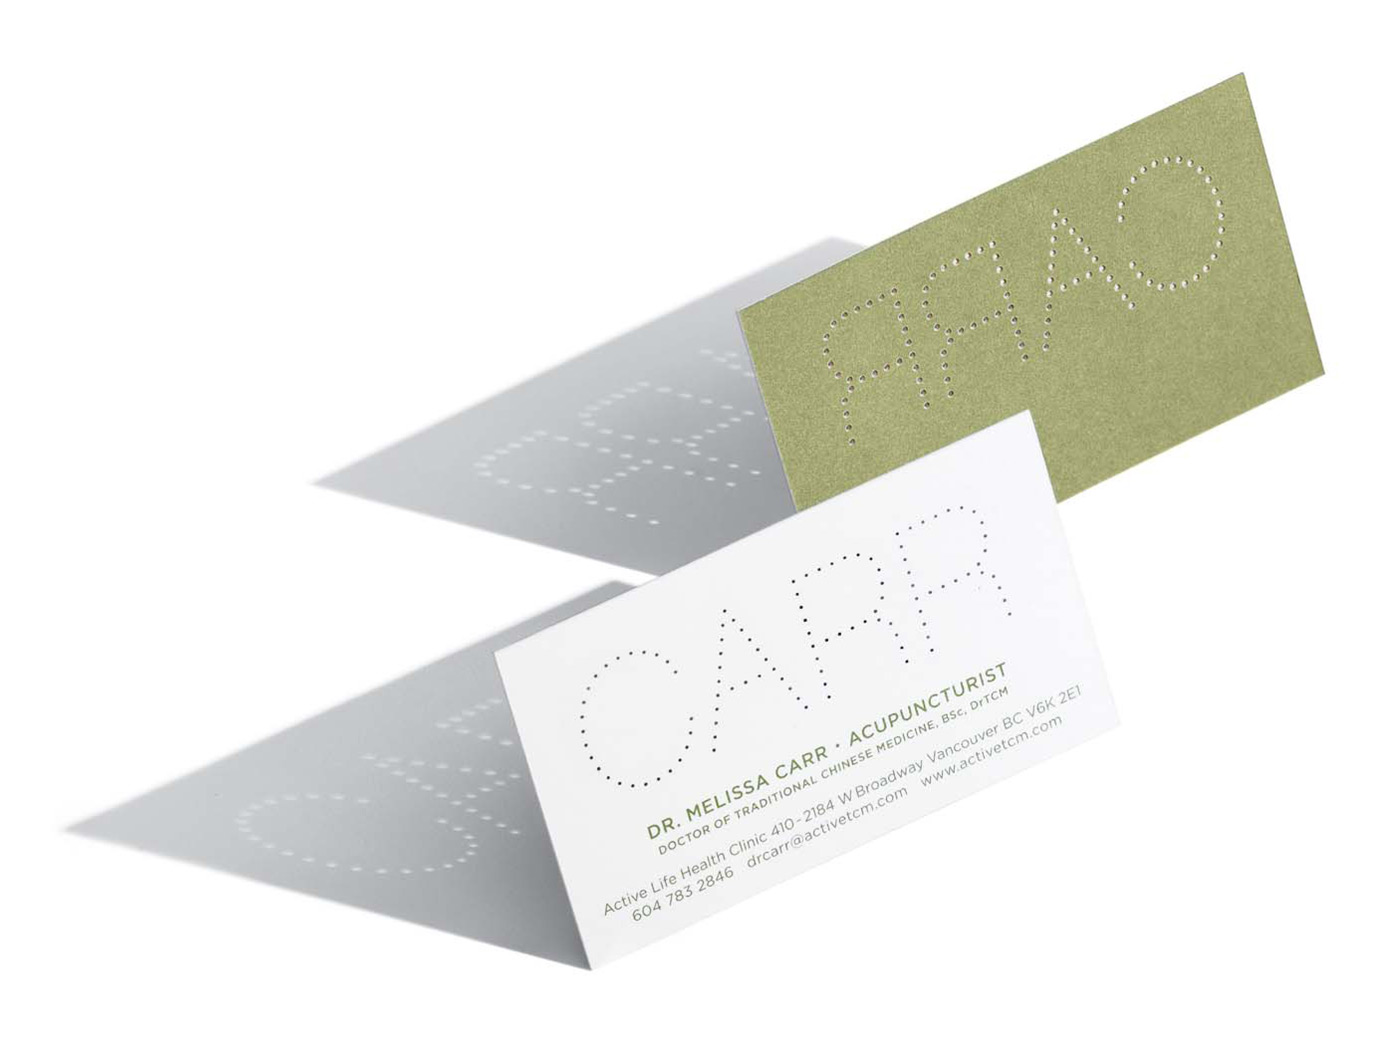 Carr acupuncture business card adeevee carr acupuncture business card magicingreecefo Image collections